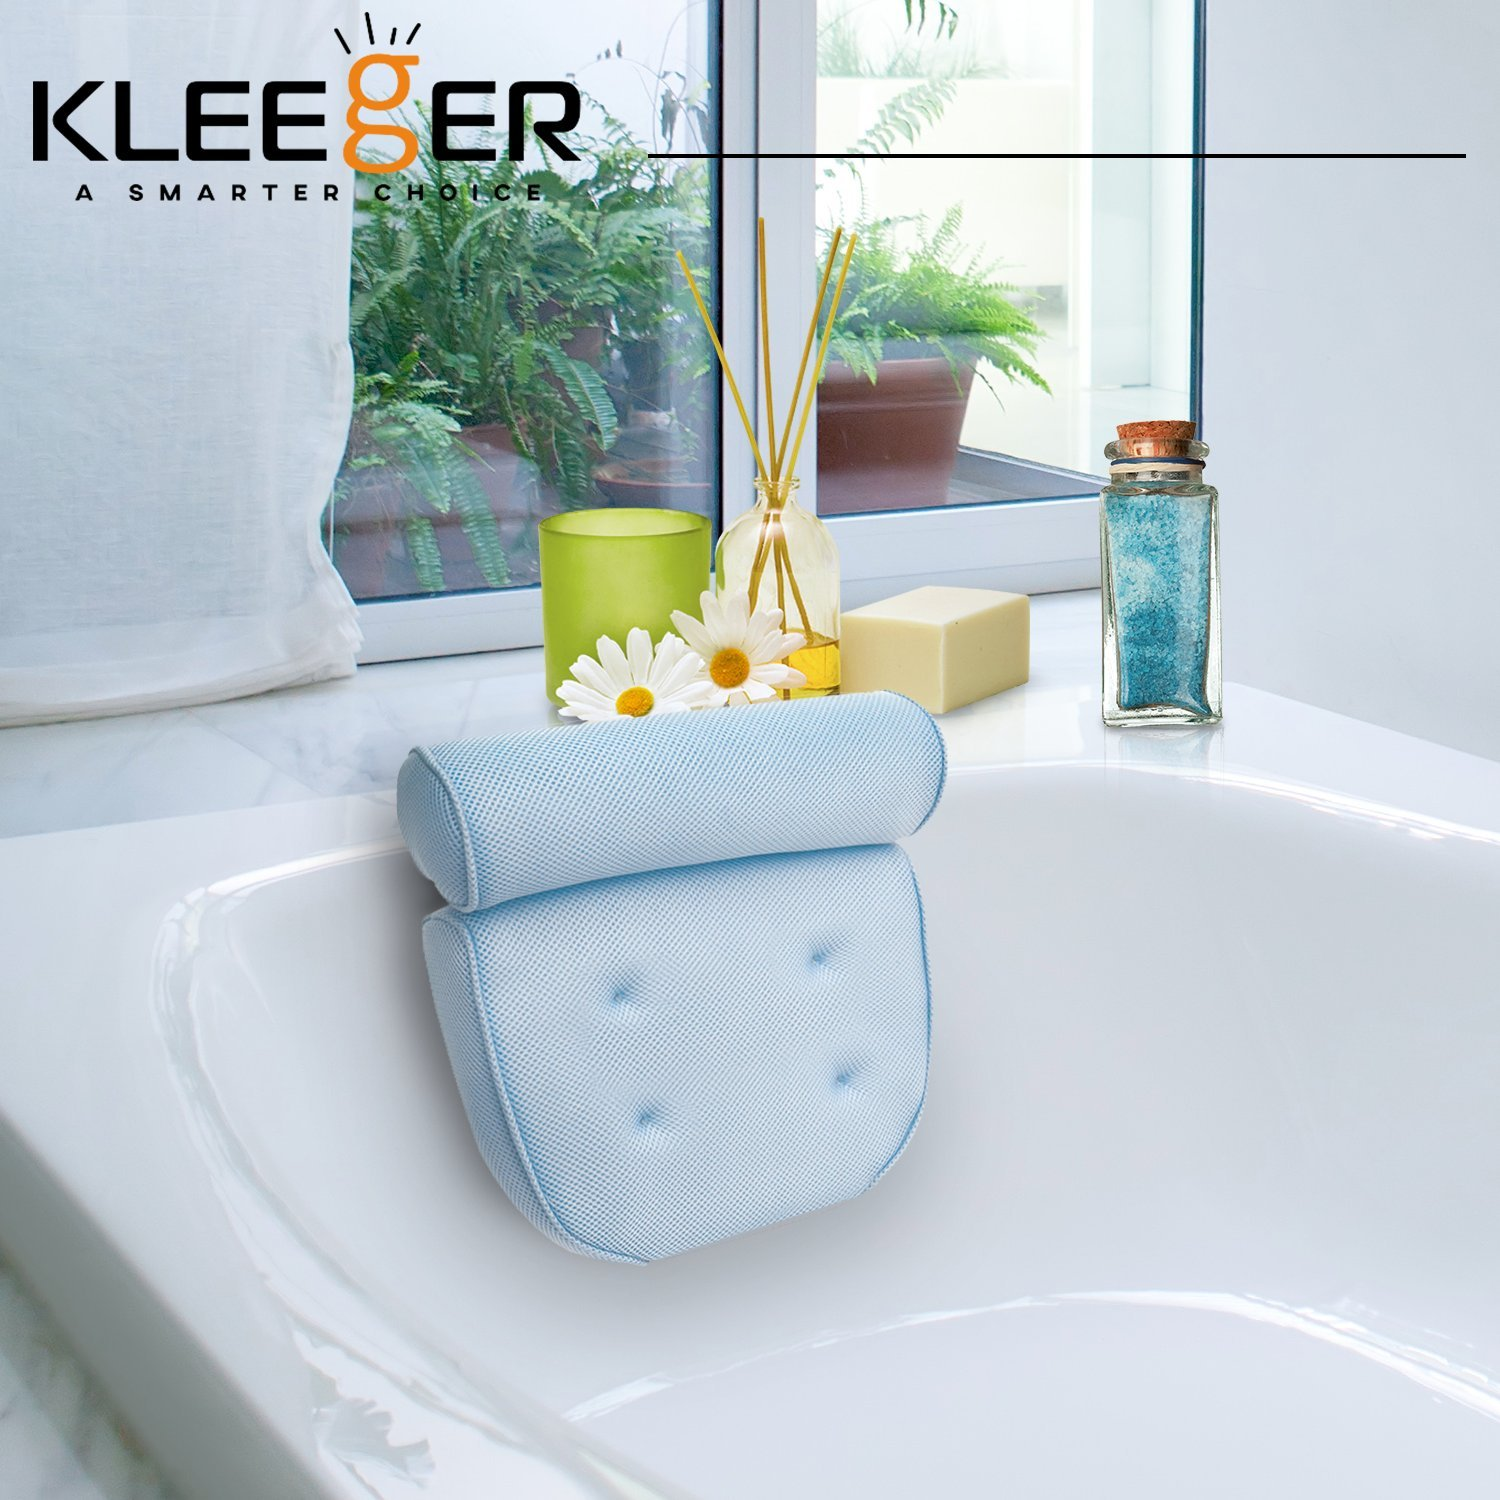 Amazon.com : Kleeger Non Slip Home Spa Jacuzzi Bath Pillow With Back ...